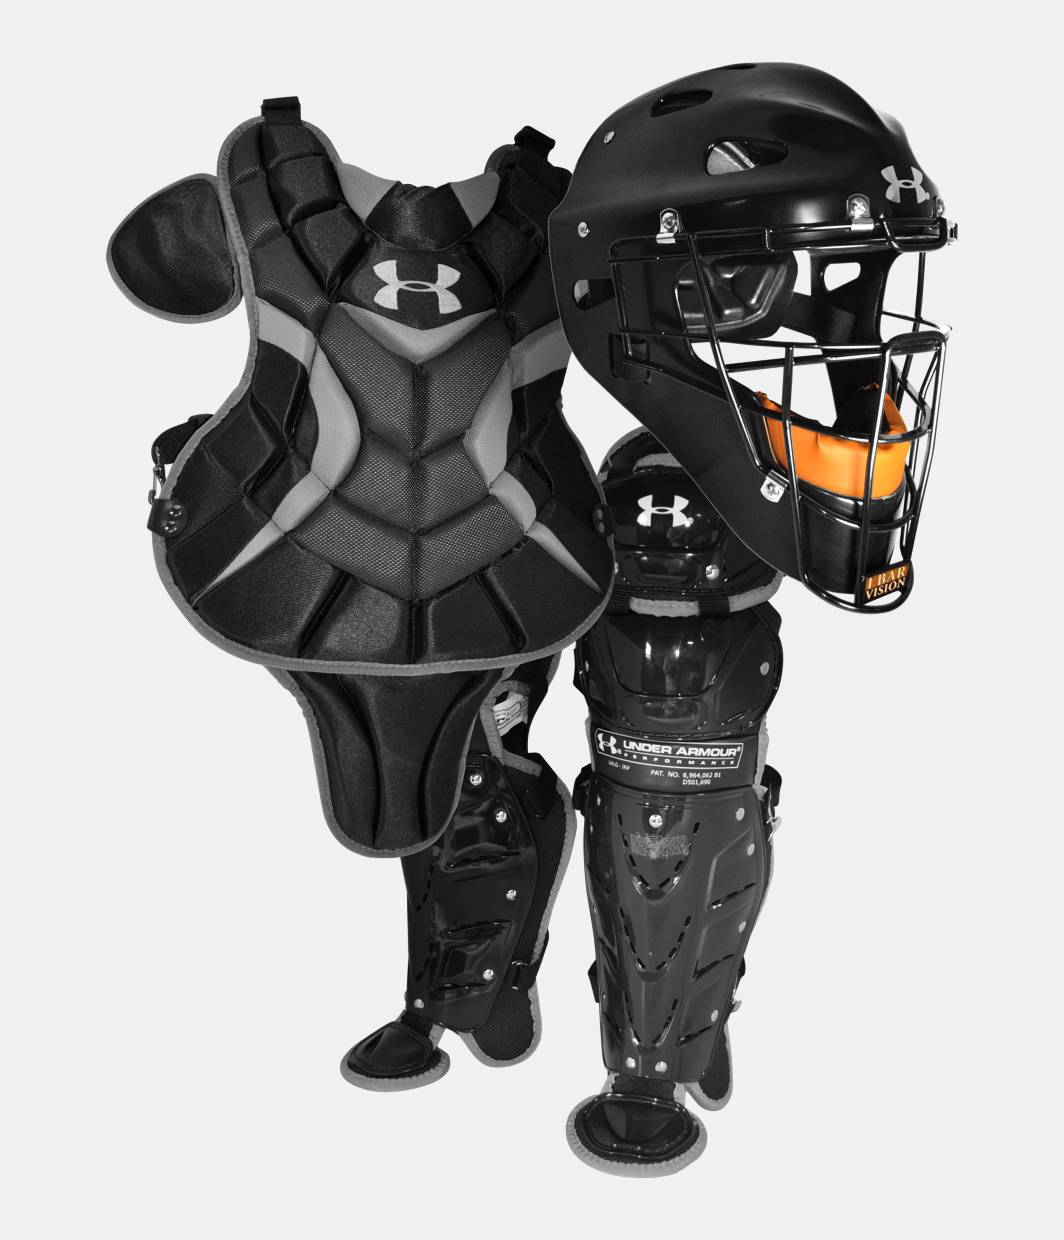 Baseball catchers gear baseball catchers gear set - Youth Catcher S Gear Kit Ages 7 9 Black Zoomed Image